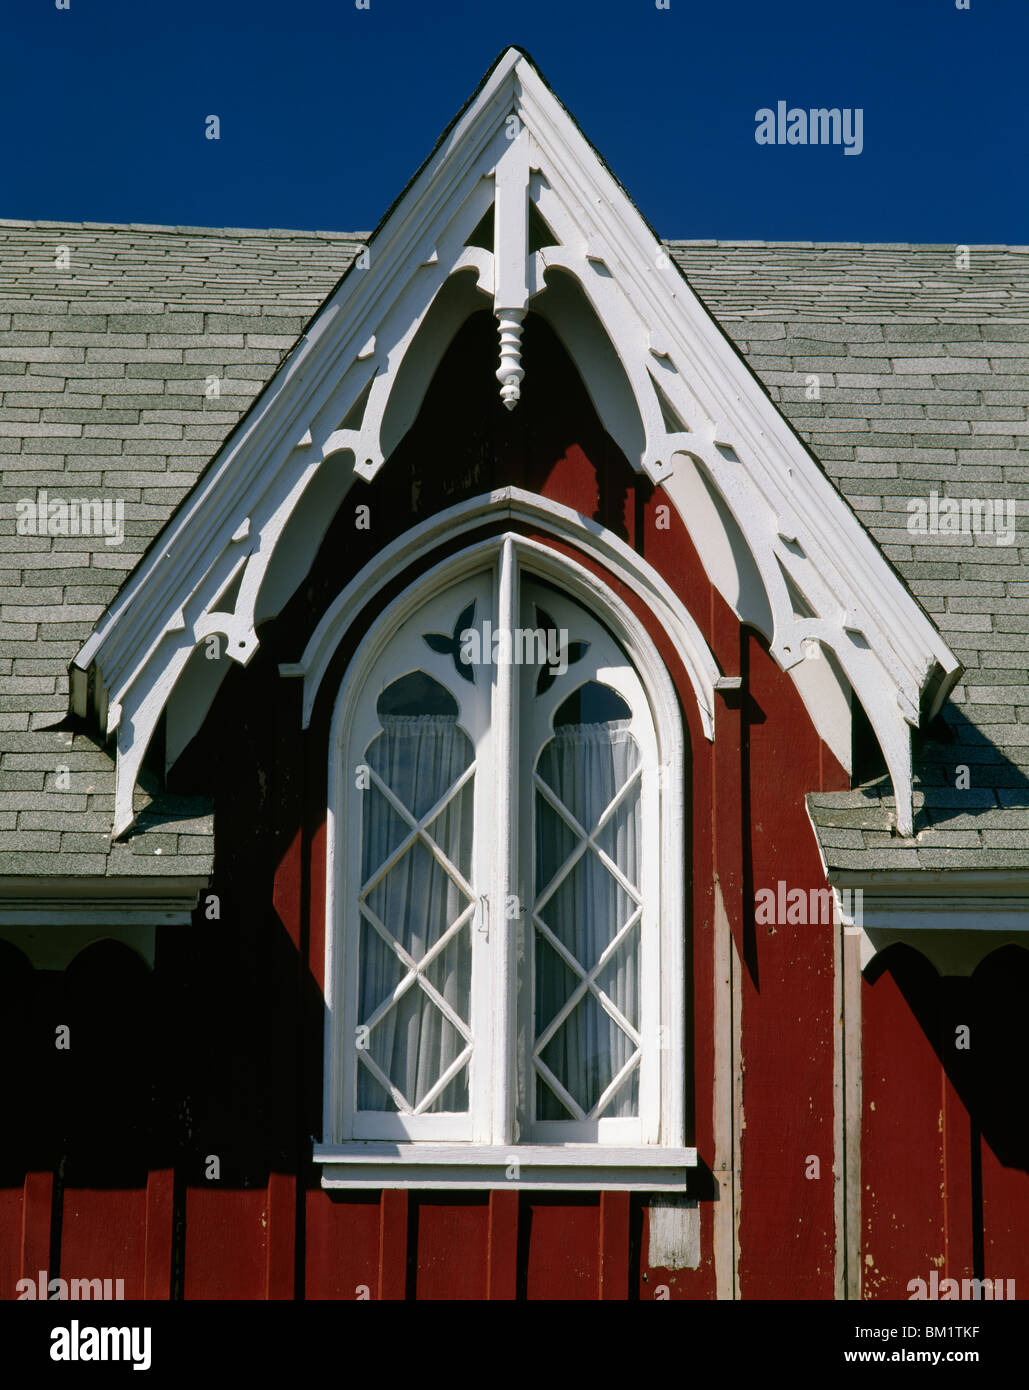 Close-up of a building, Eureka, California, USA - Stock Image